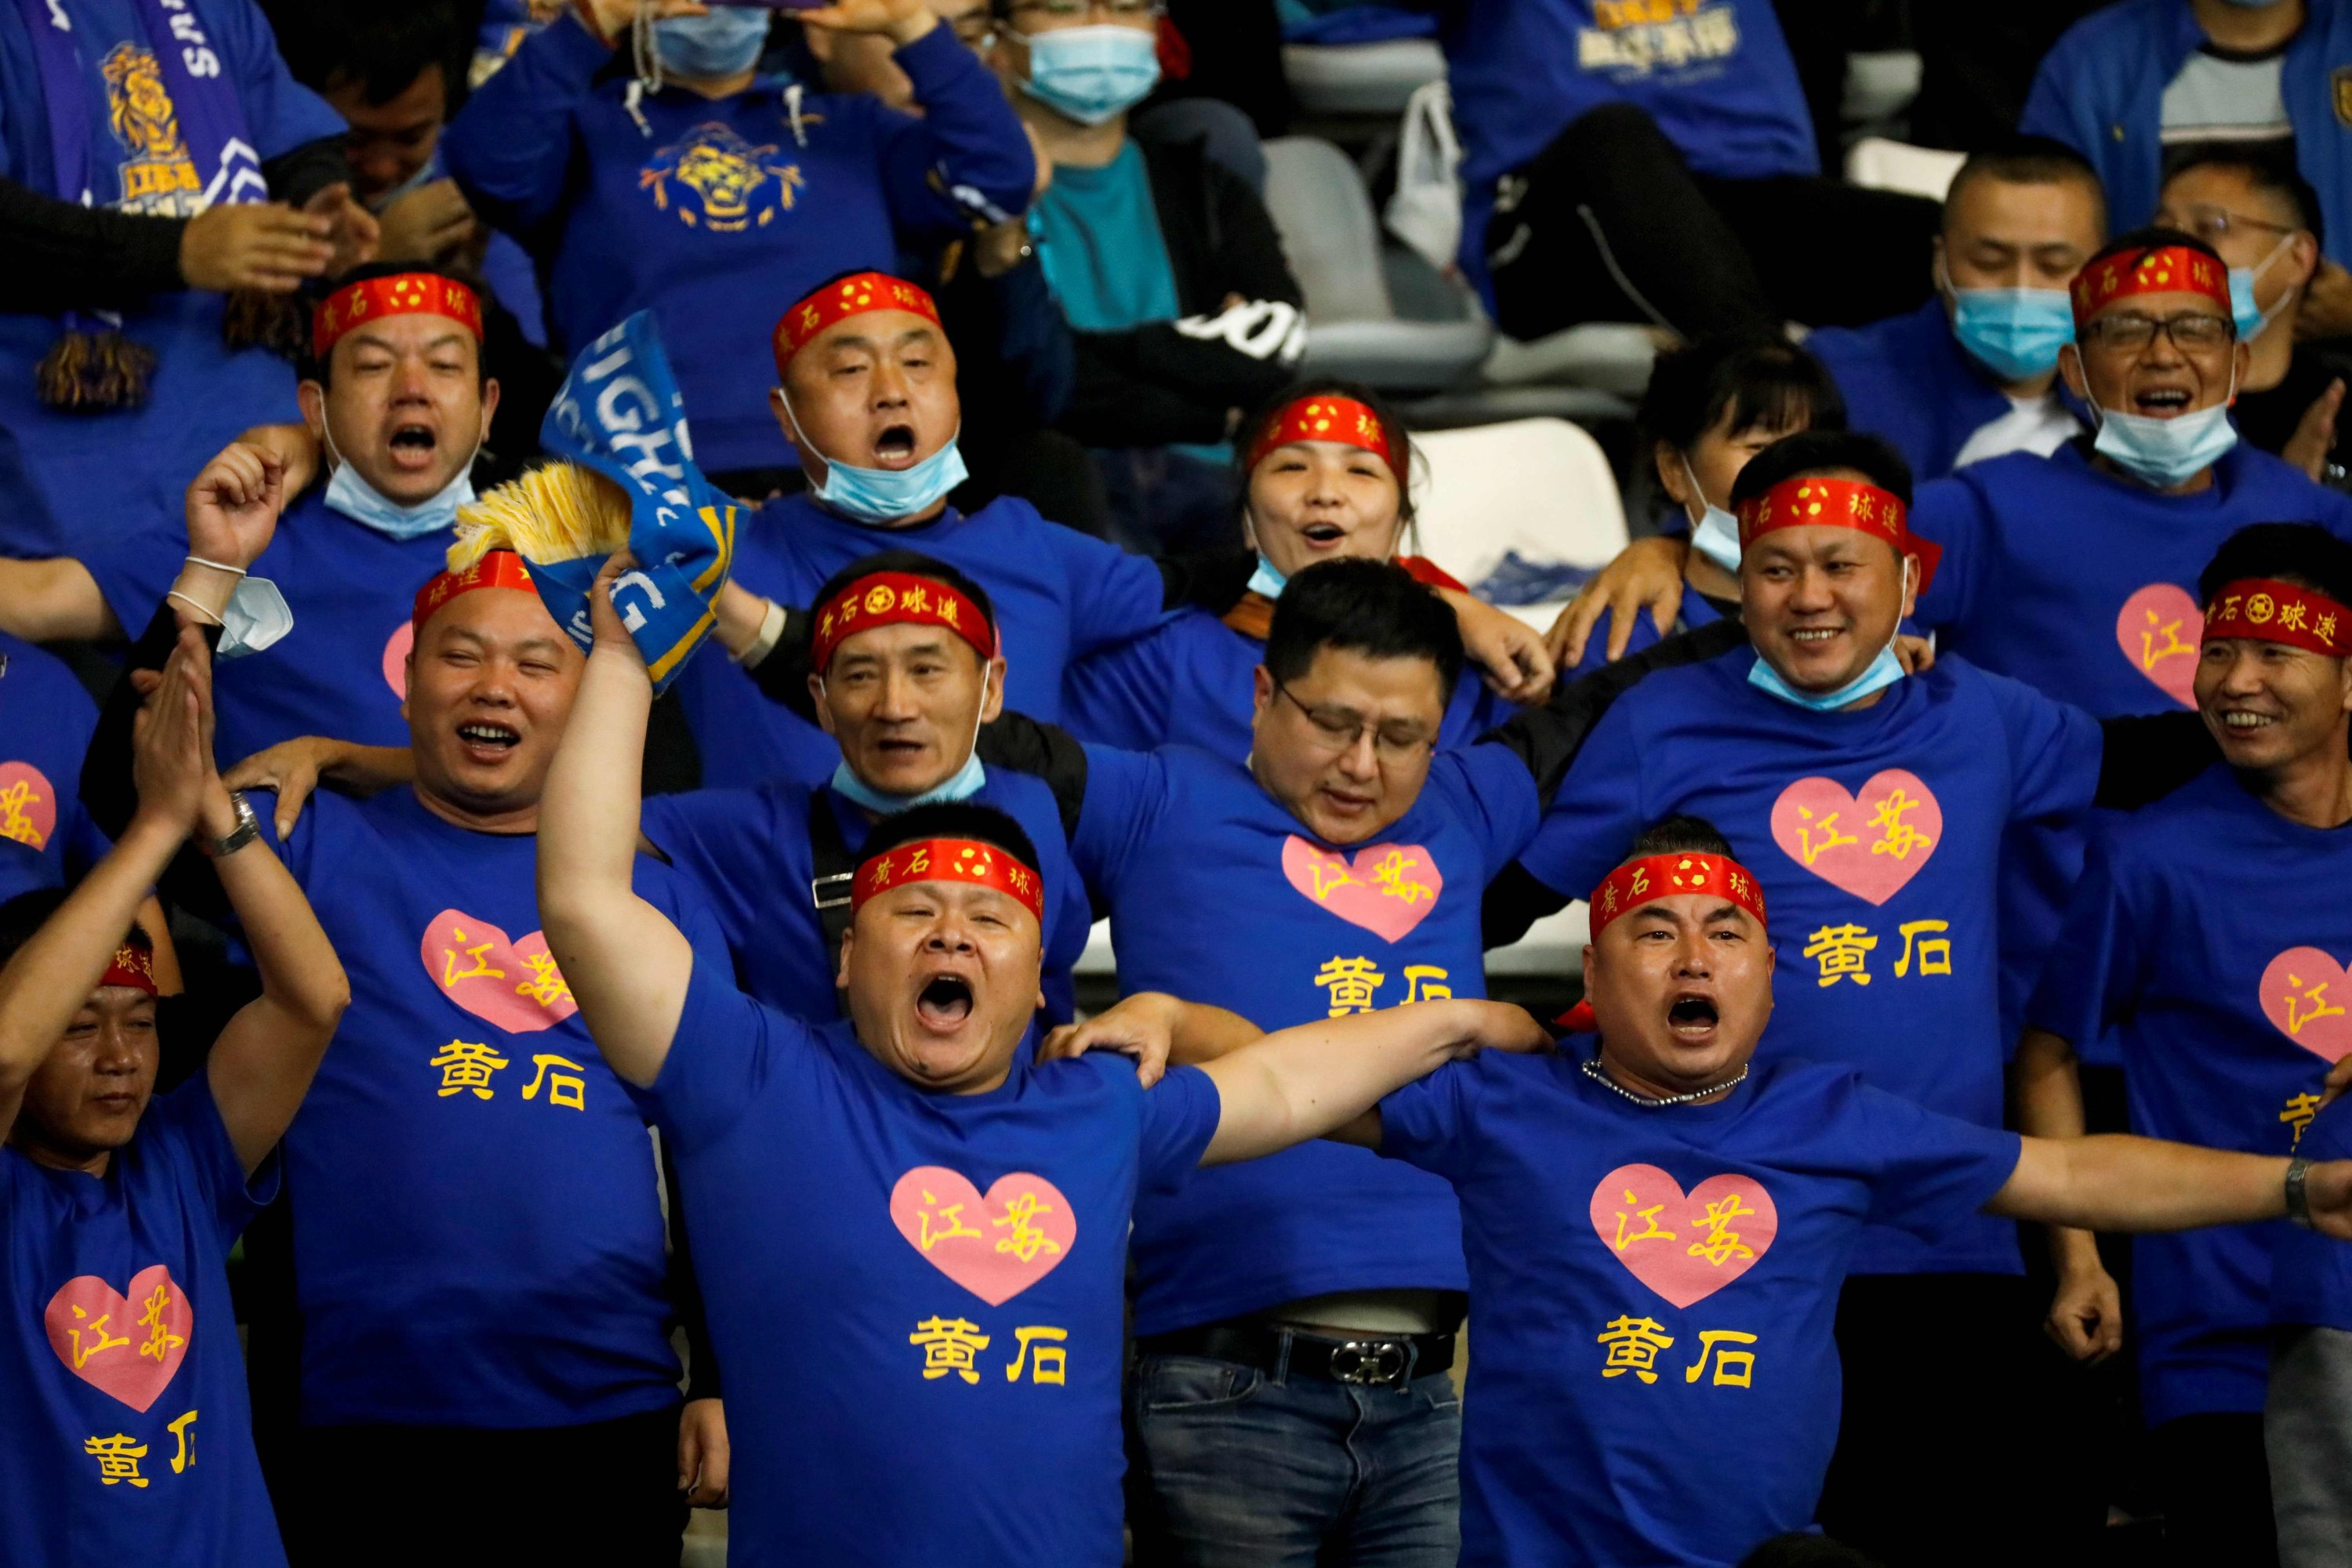 Supporters of Jiangsu Suning cheer for their team during the Chinese Super League (CSL) final football match between Guangzhou Evergrande and Jiangsu Suning in Suzhou in China's eastern Jiangsu province, Nov. 12, 2020. (AFP Photo)